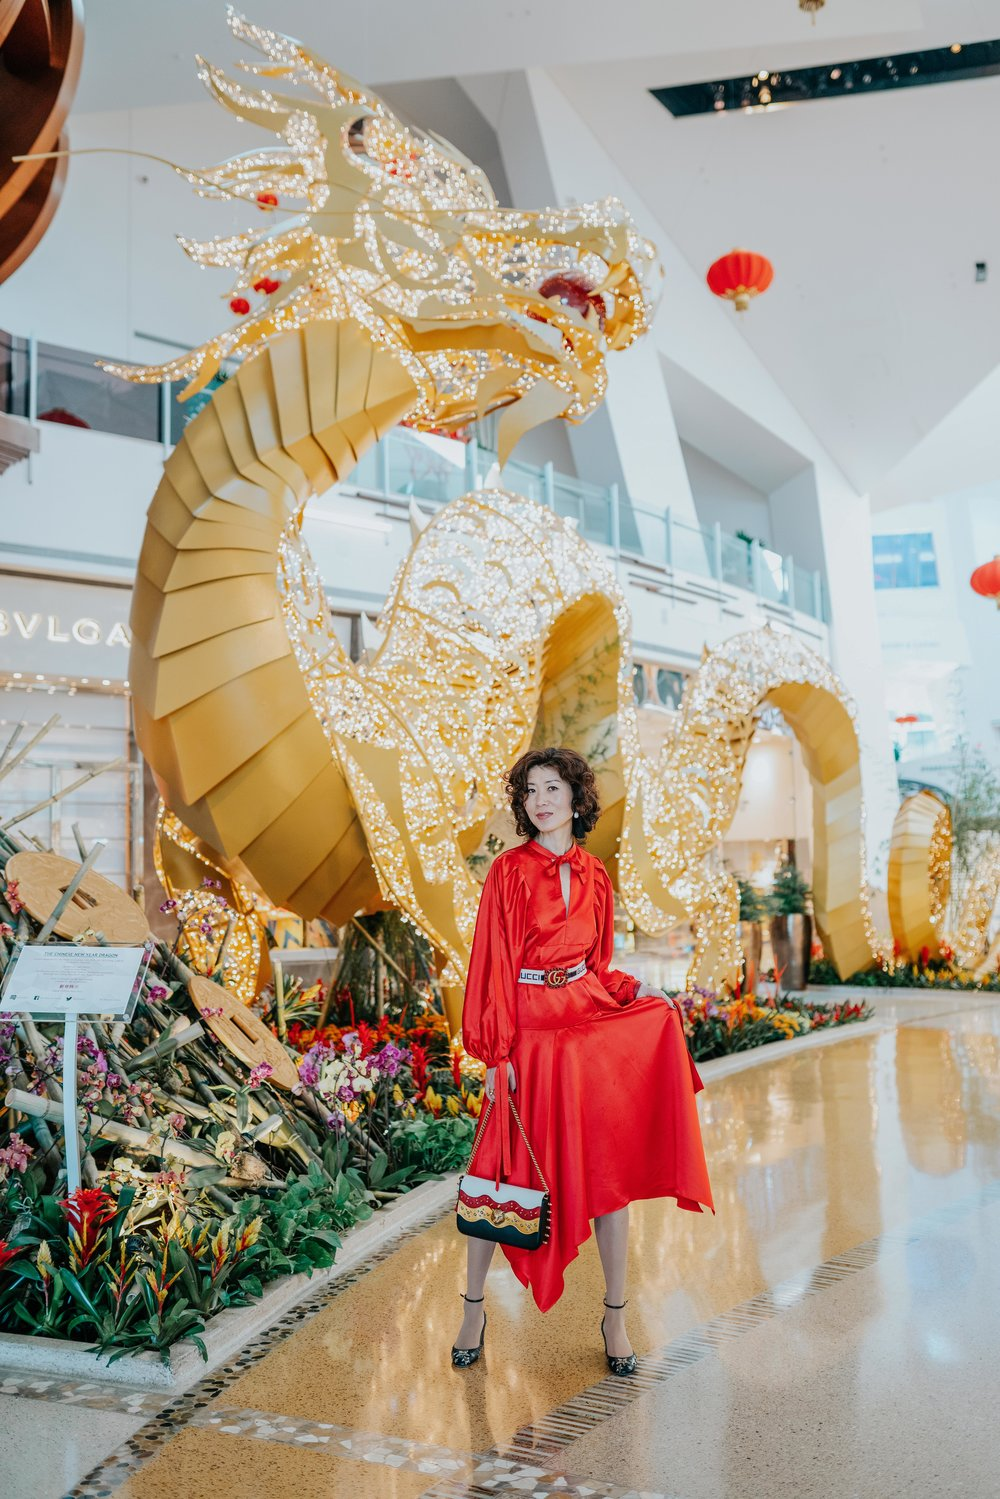 Wearing red brings luck during Chinese New Year.